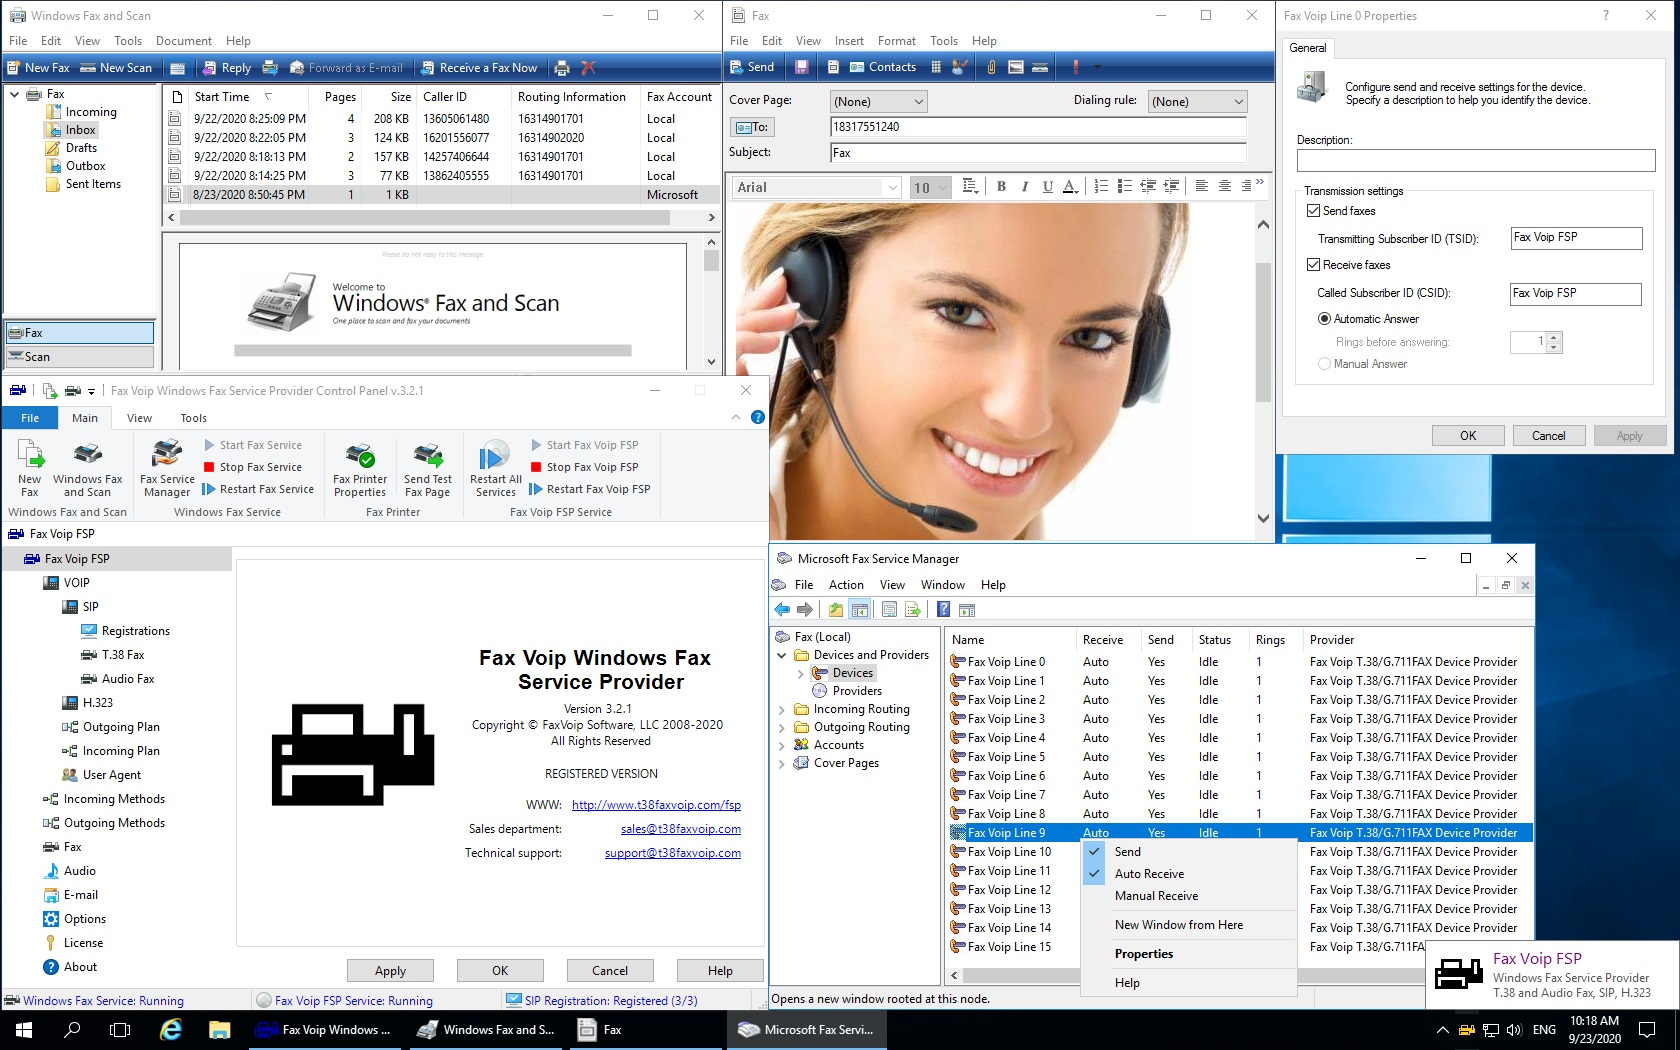 FSP, Fax Service Provider, Windows Fax Service, VOIP, FOIP, T38, T.38, H323, H.323, SIP, Windows Fax and Scan, Microsoft Fax, PBX, Telephony, Fax, Telephone, Phone, Voice over IP, Fax over IP, Gateway, Fax, Modem, Caller ID, DID, Email2Fax, Fax2Email